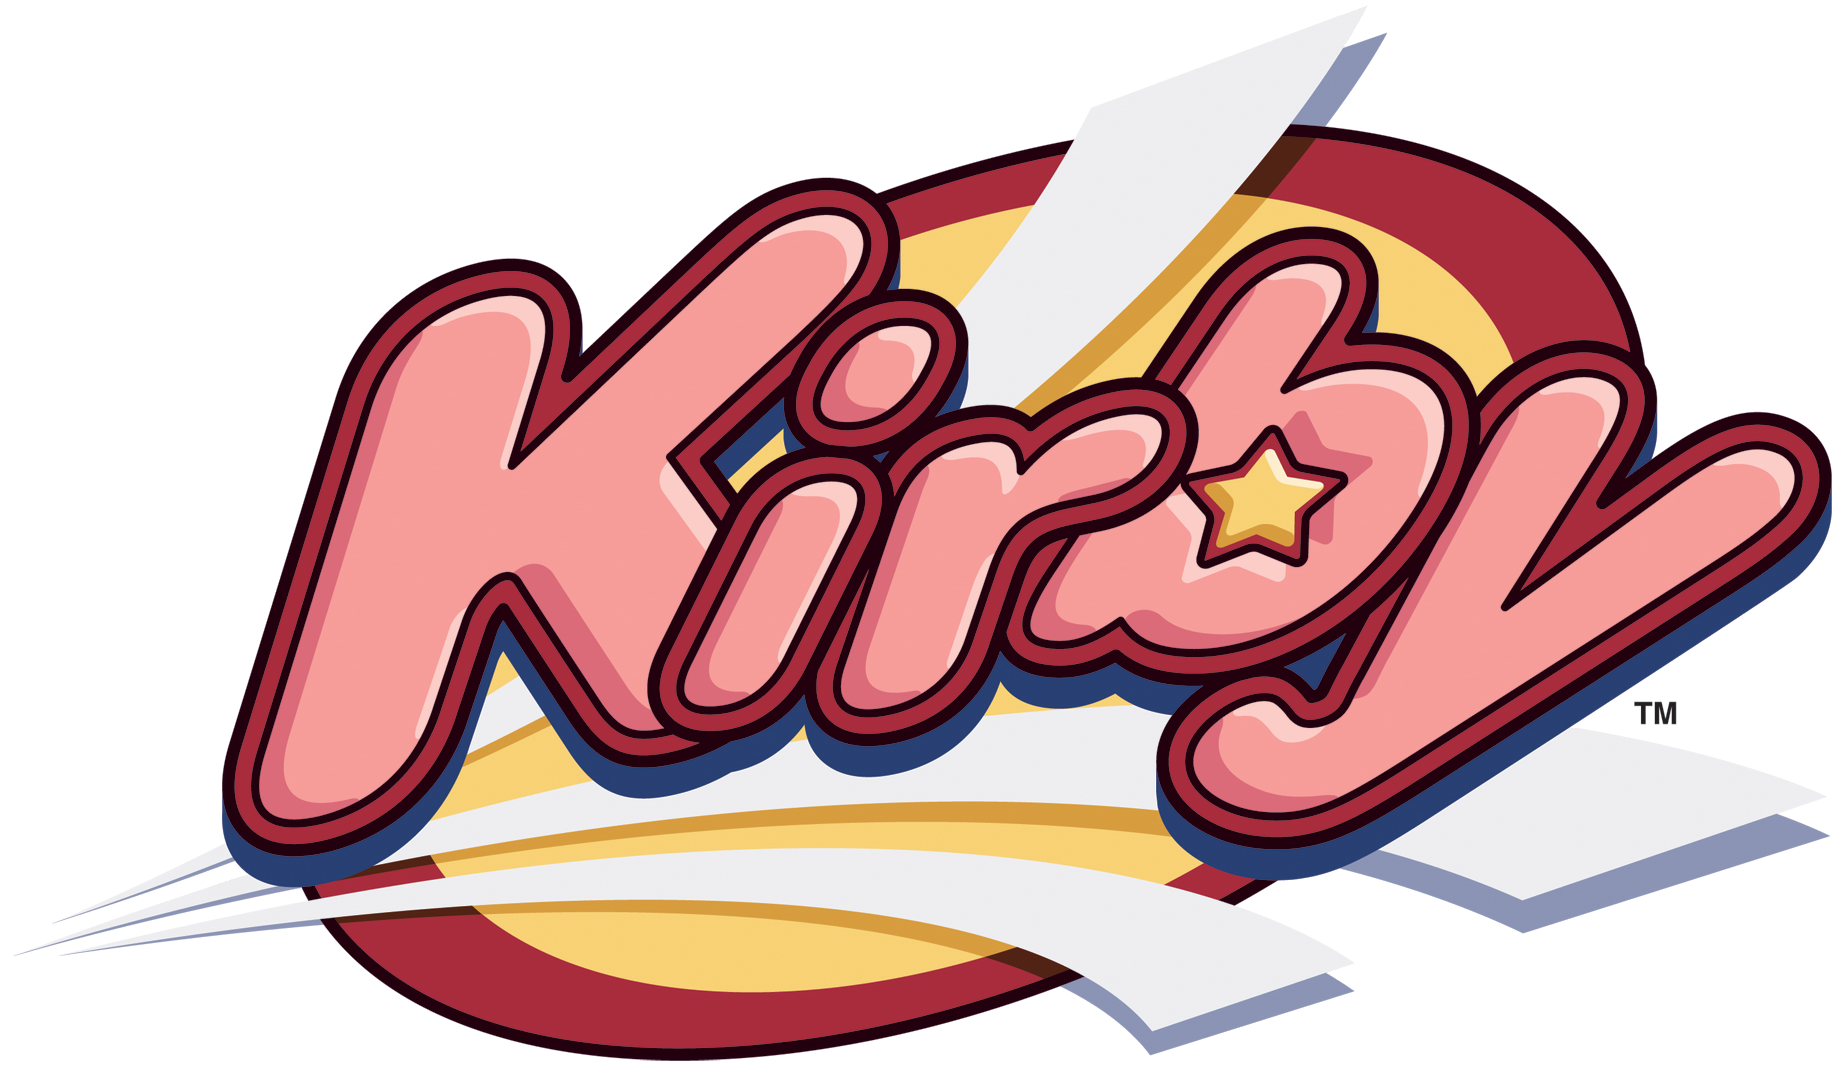 http://static4.wikia.nocookie.net/__cb20110516071625/kirby/en/images/c/ce/KirbyLogo.png